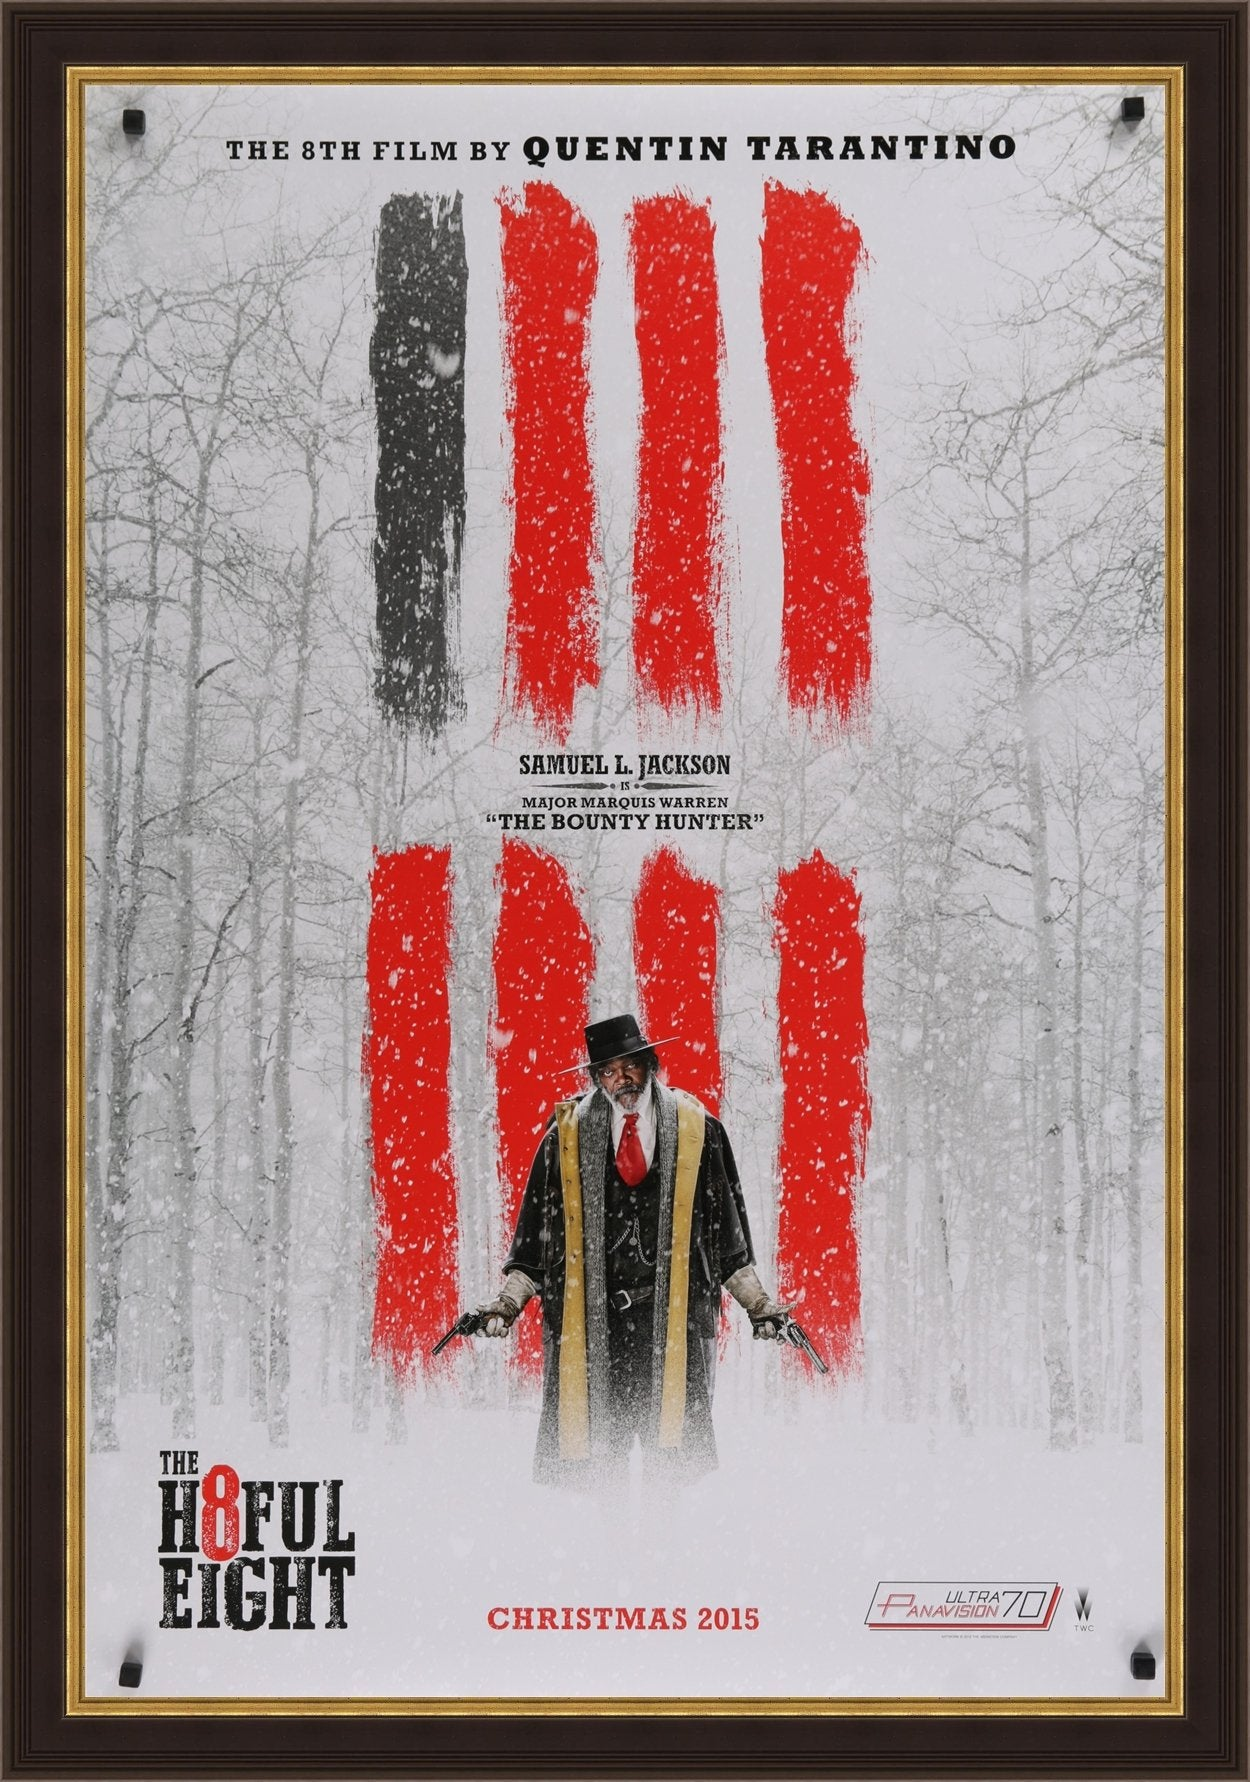 An original movie poster for the Tarantino film The Hateful Eight